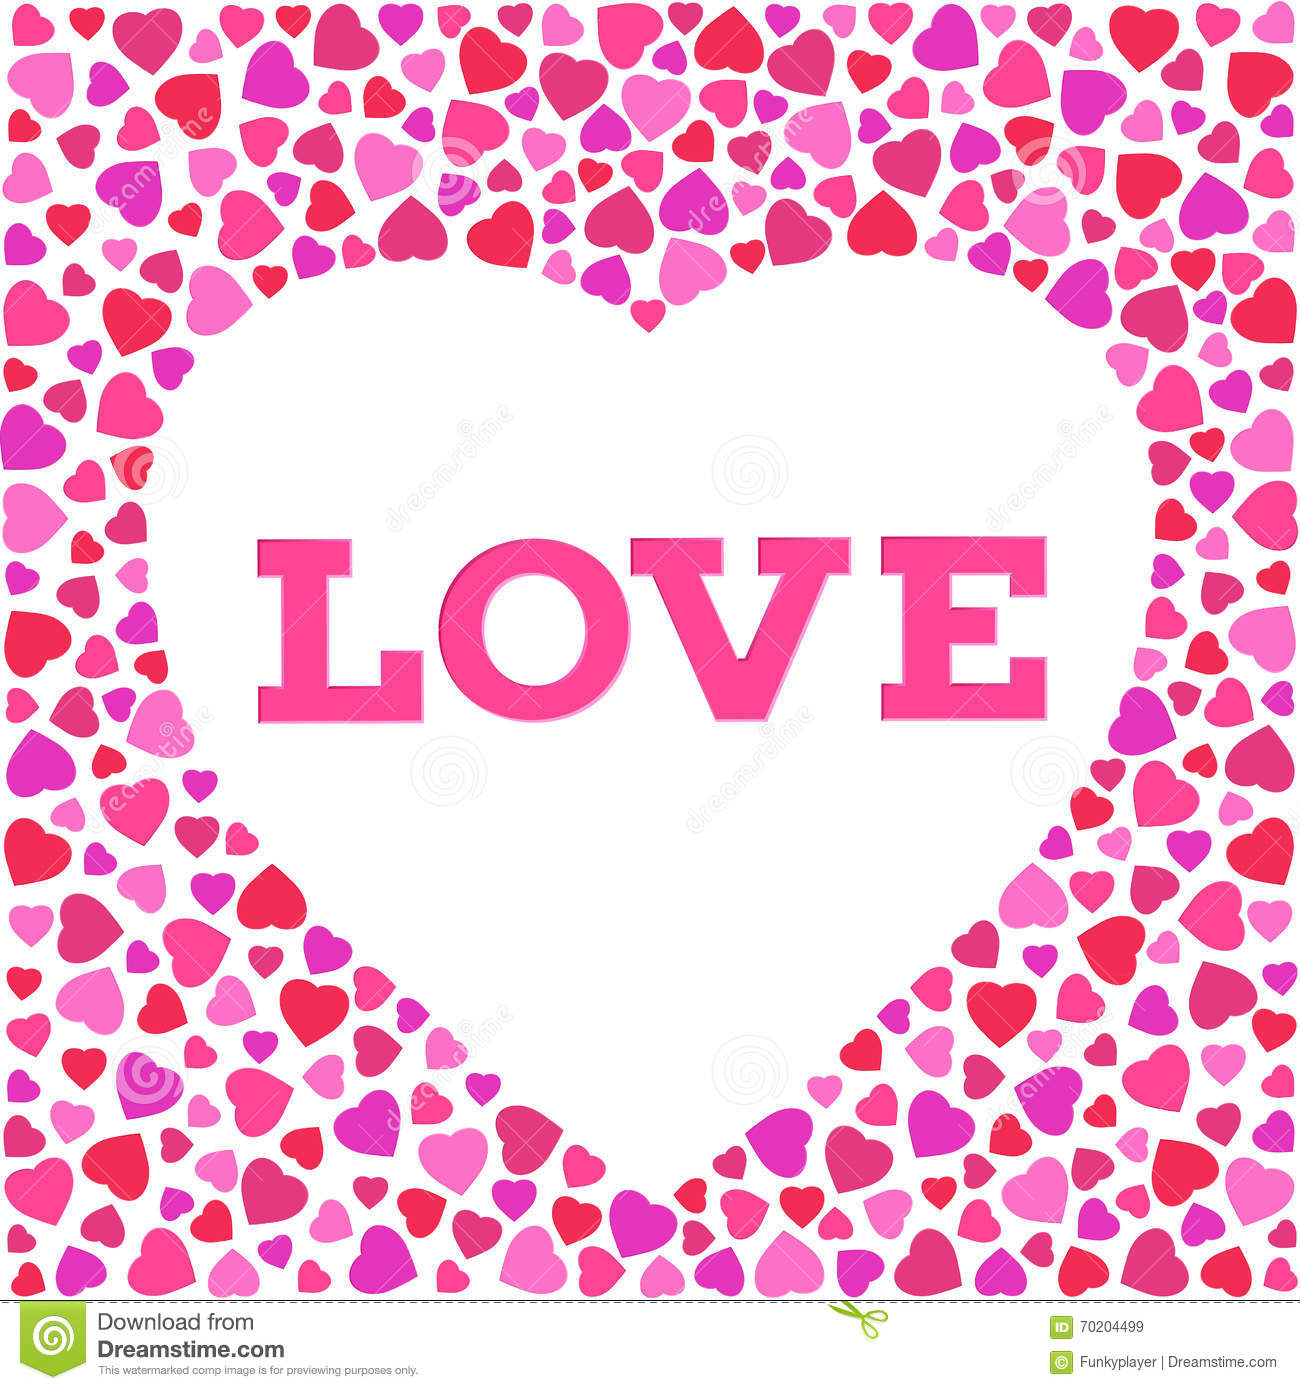 Greeting Card With Stylized Heart Symbol And Love